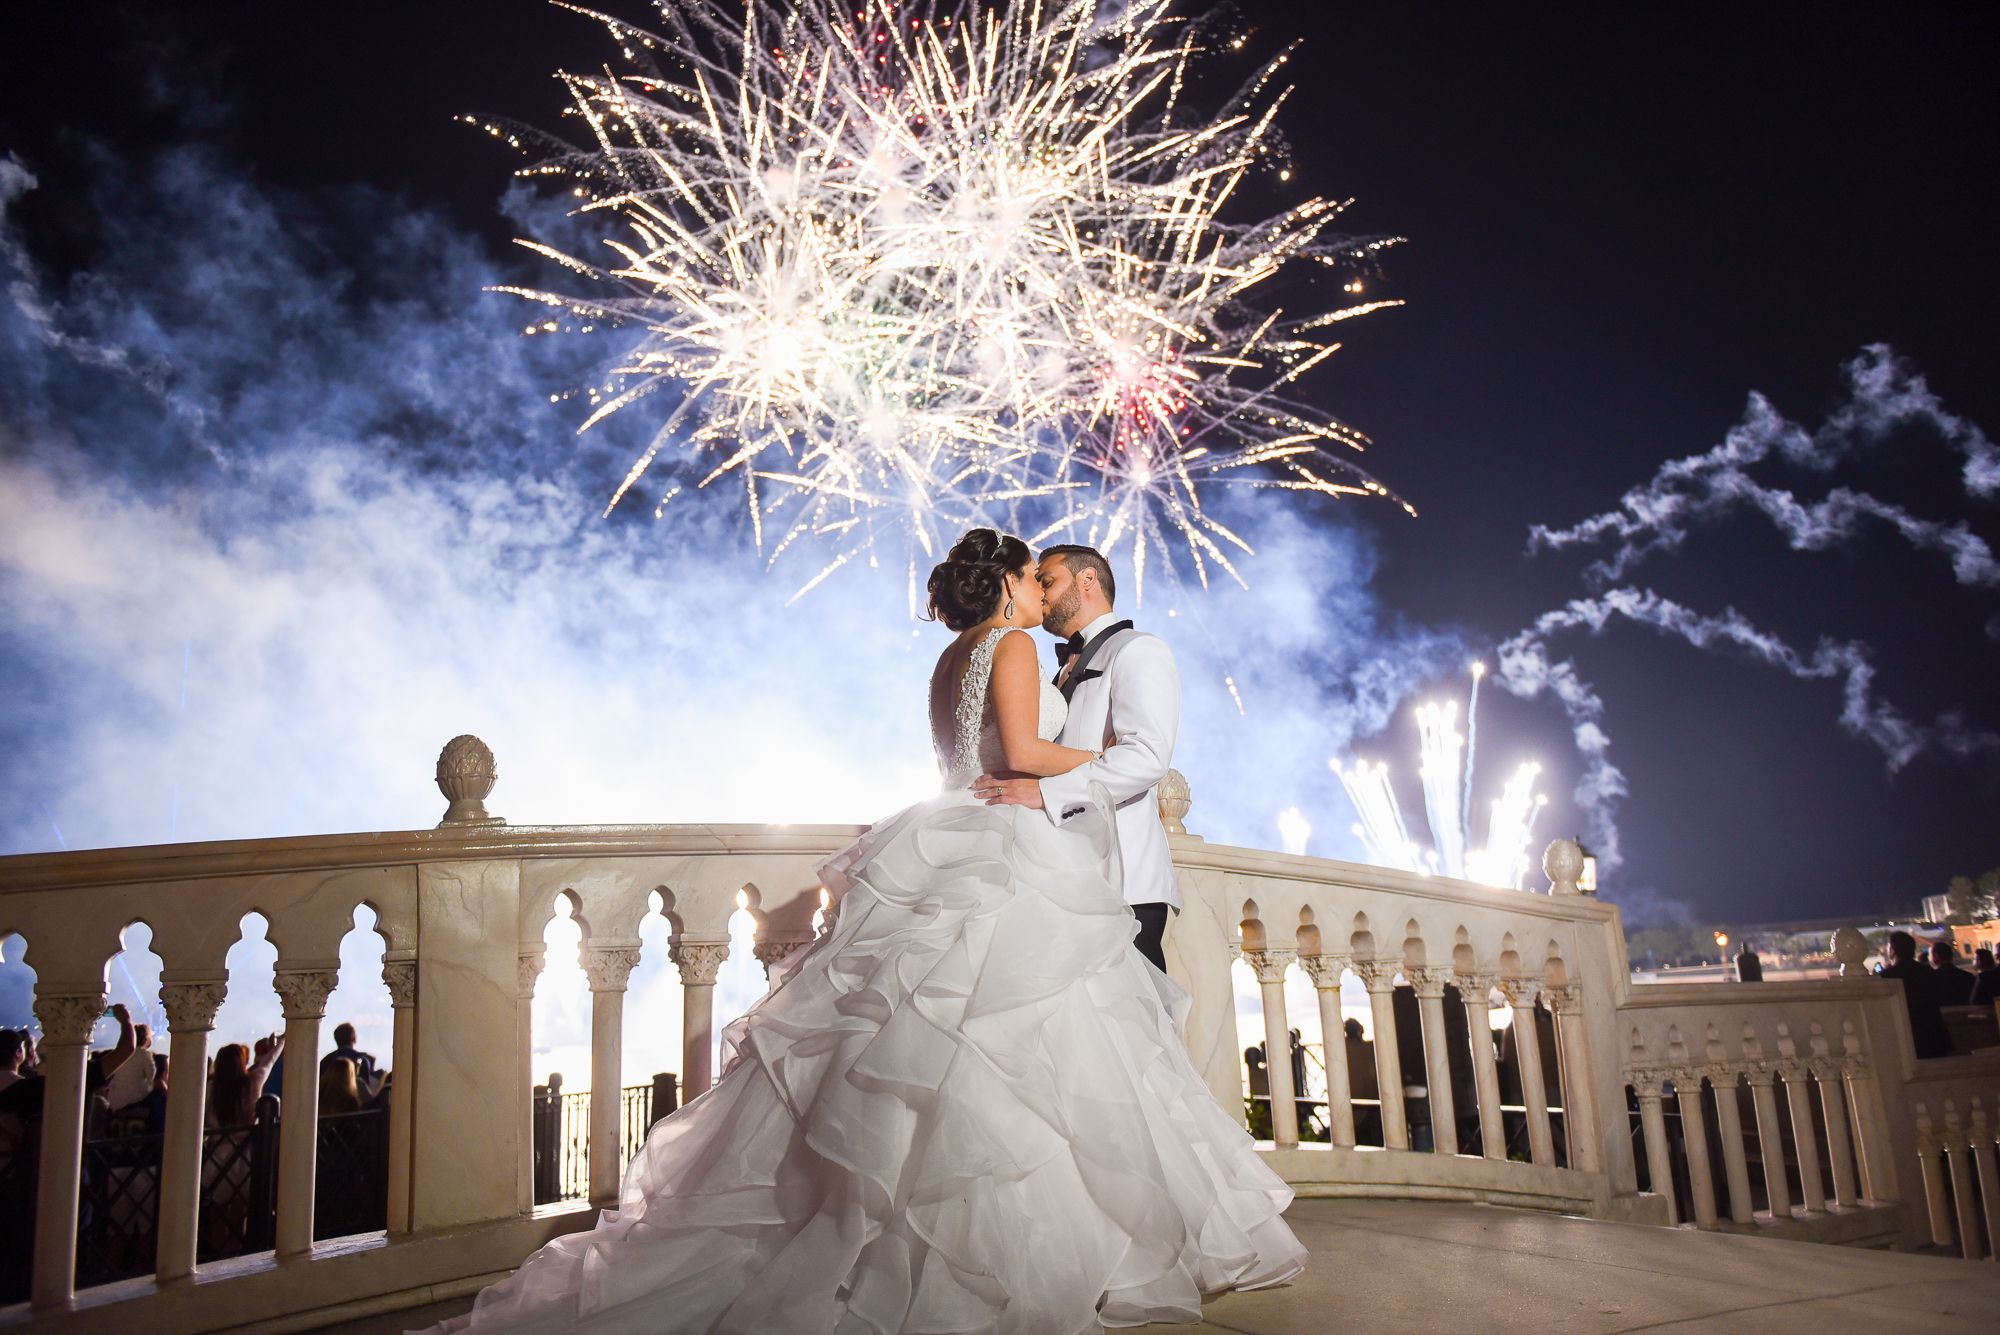 Disney Wedding Disneyland Wedding Castle Wedding Fairy Tale Wedding Disney Wedding Venue Disney World Wedding Disneyland Wedding